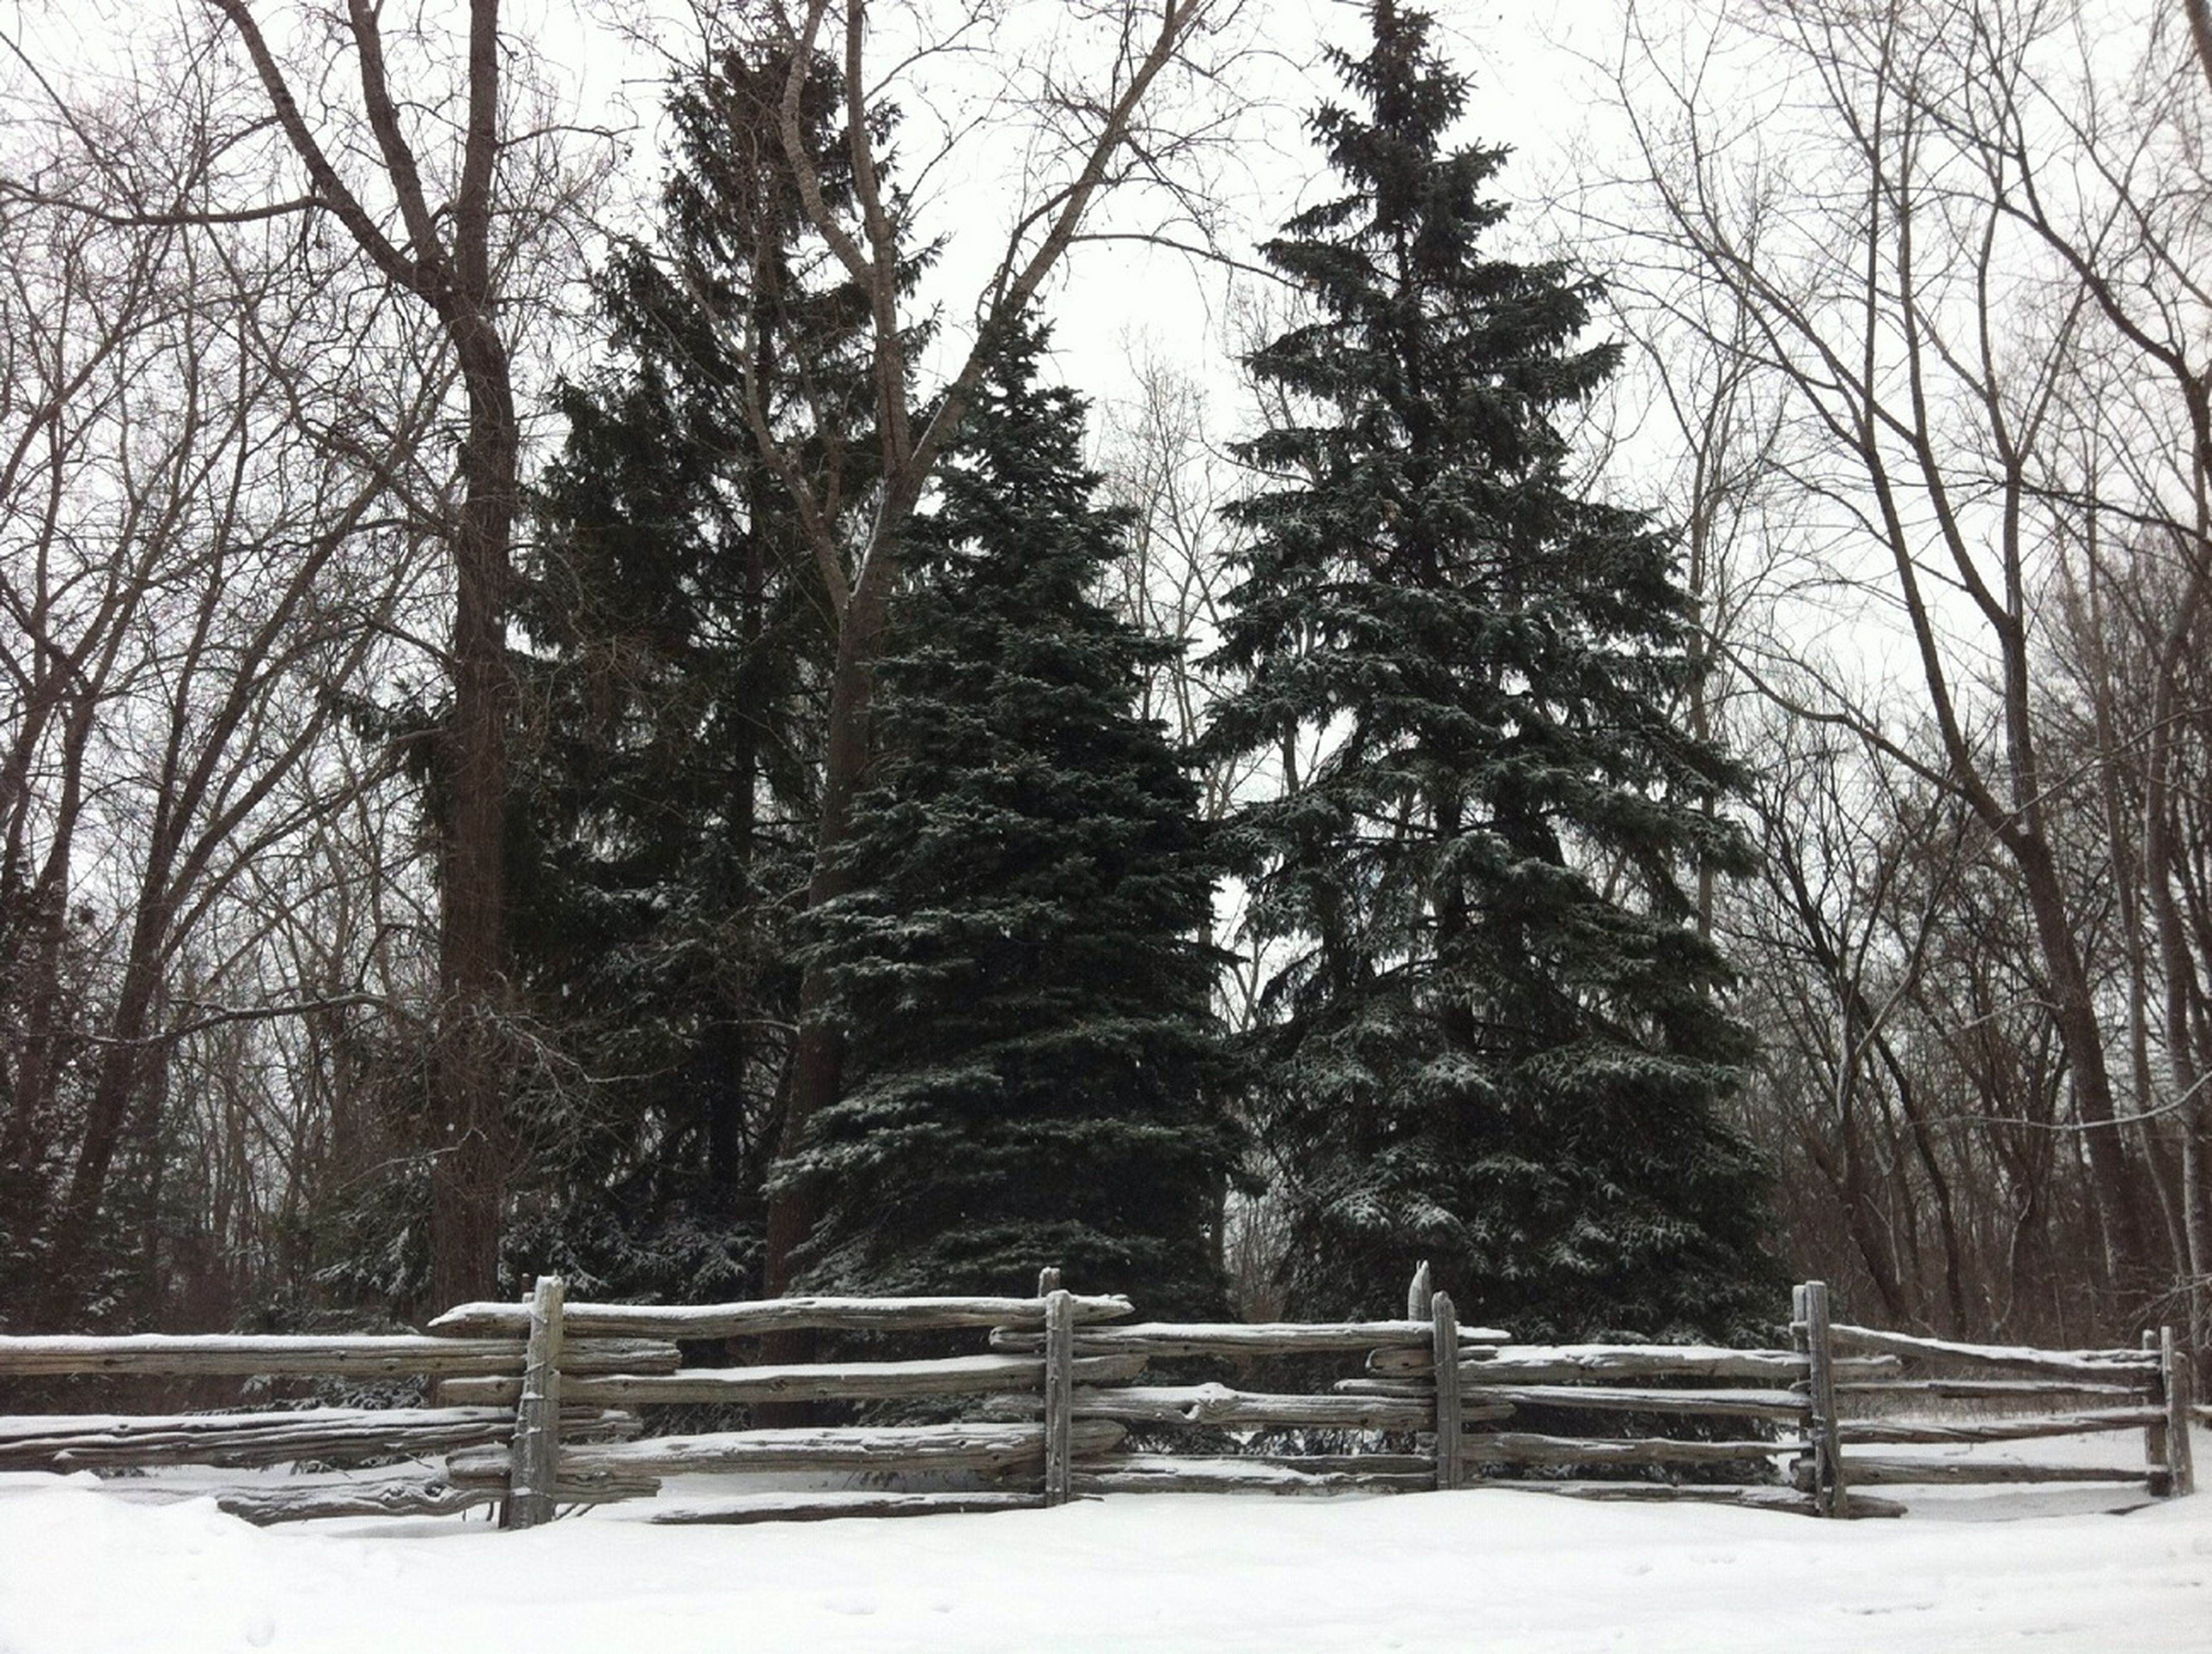 tree, winter, snow, cold temperature, tranquility, bare tree, tranquil scene, bench, season, nature, branch, tree trunk, weather, landscape, scenics, beauty in nature, field, covering, wood - material, empty